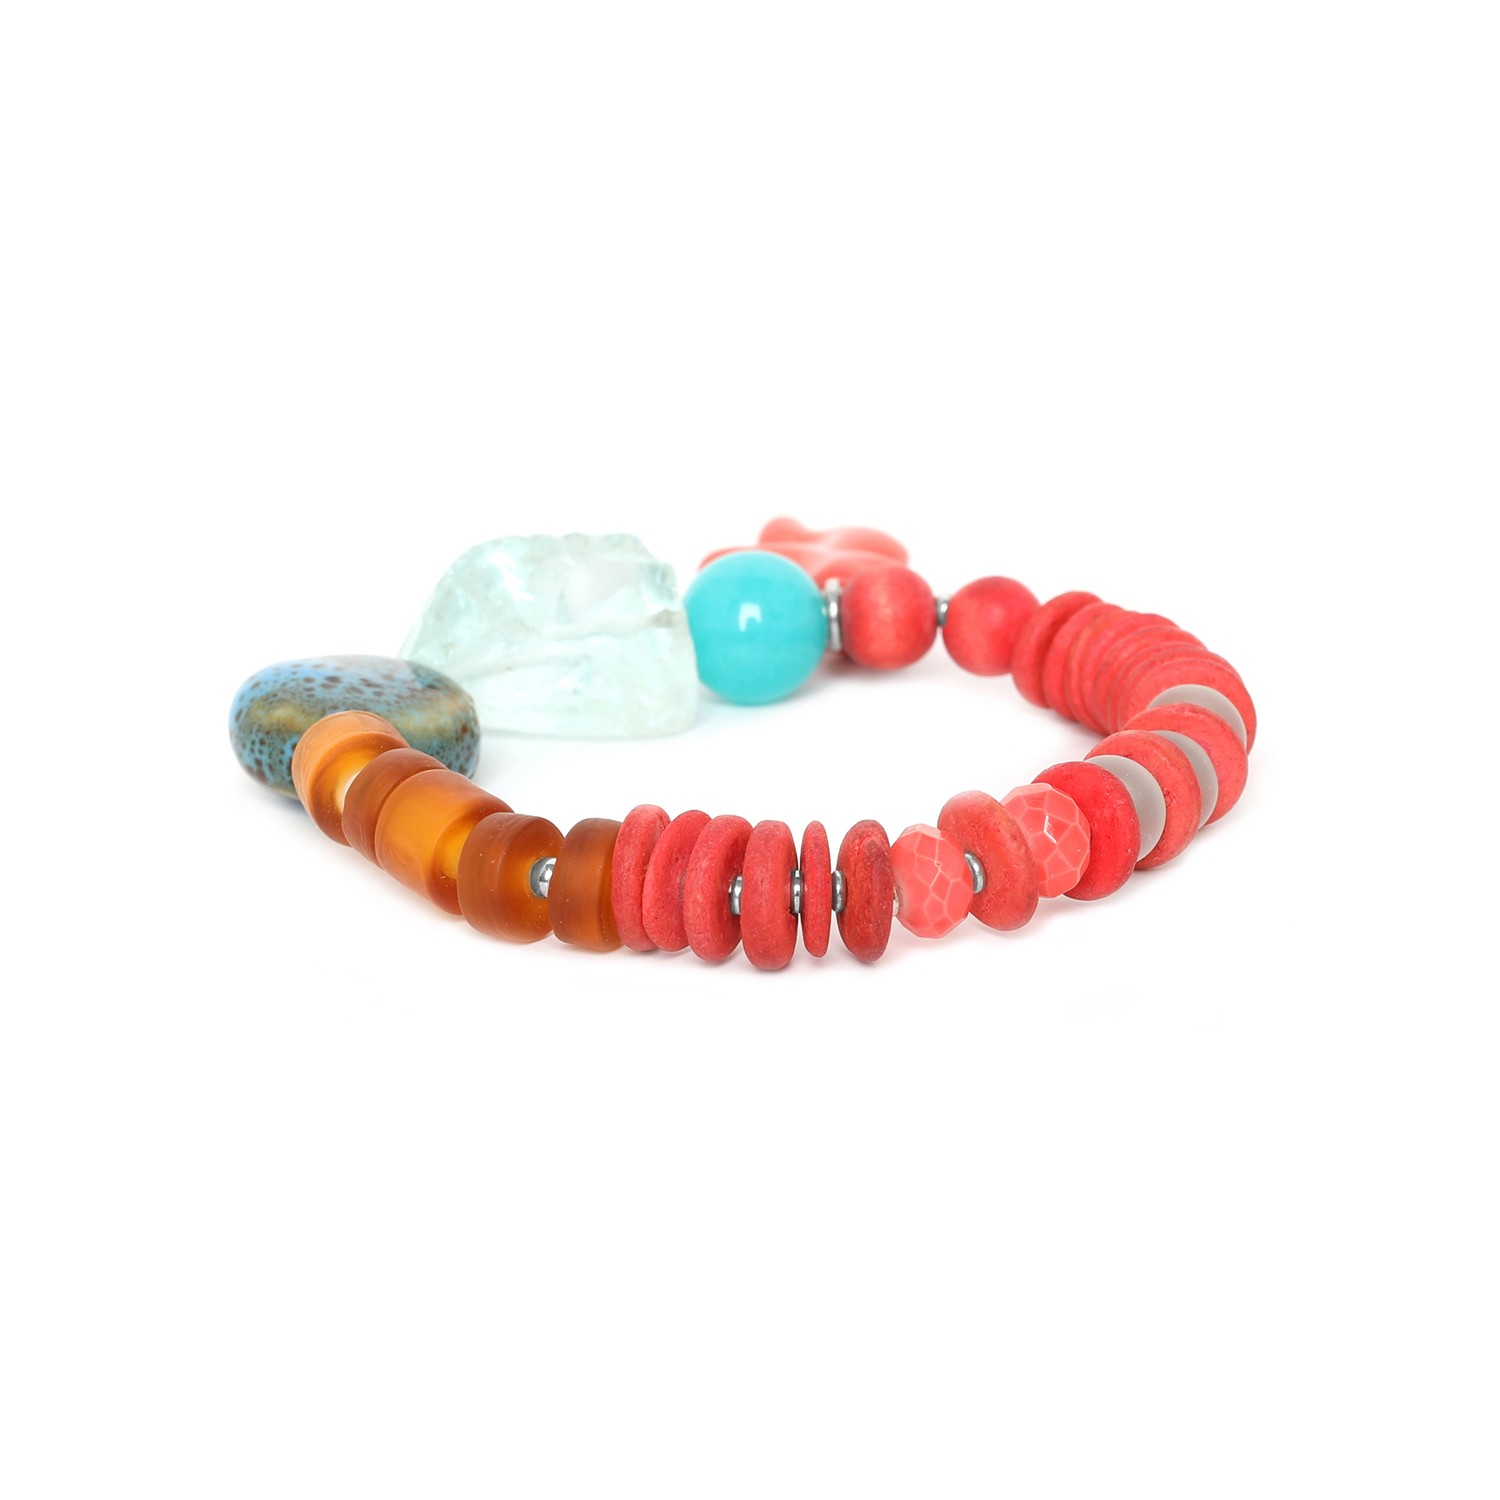 KIRIBATI big stretch bracelet